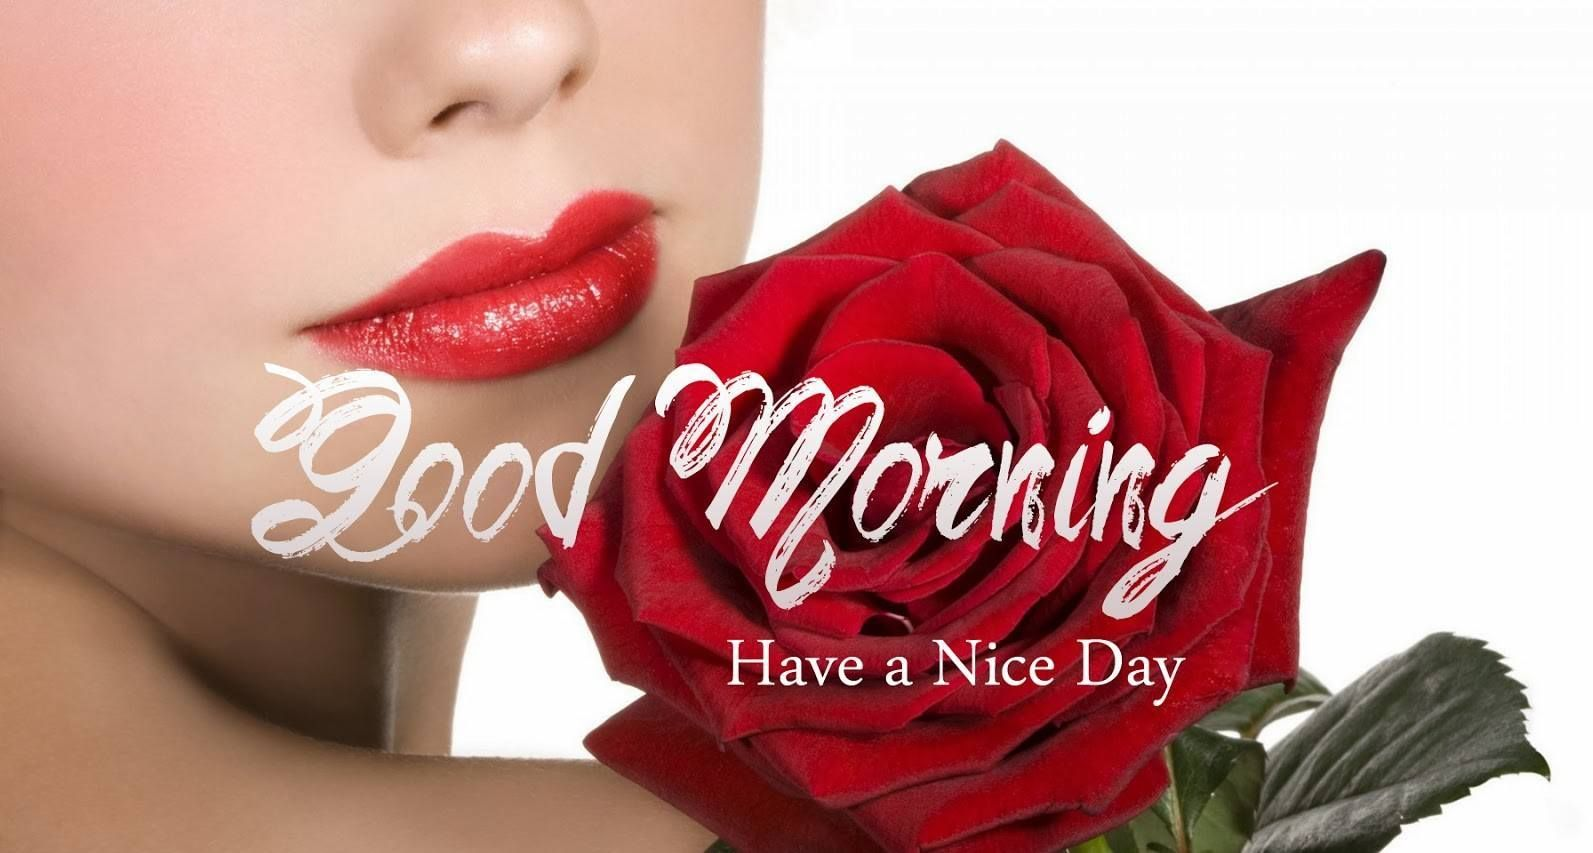 Here, we have shared Romantic Good Morning Messages for